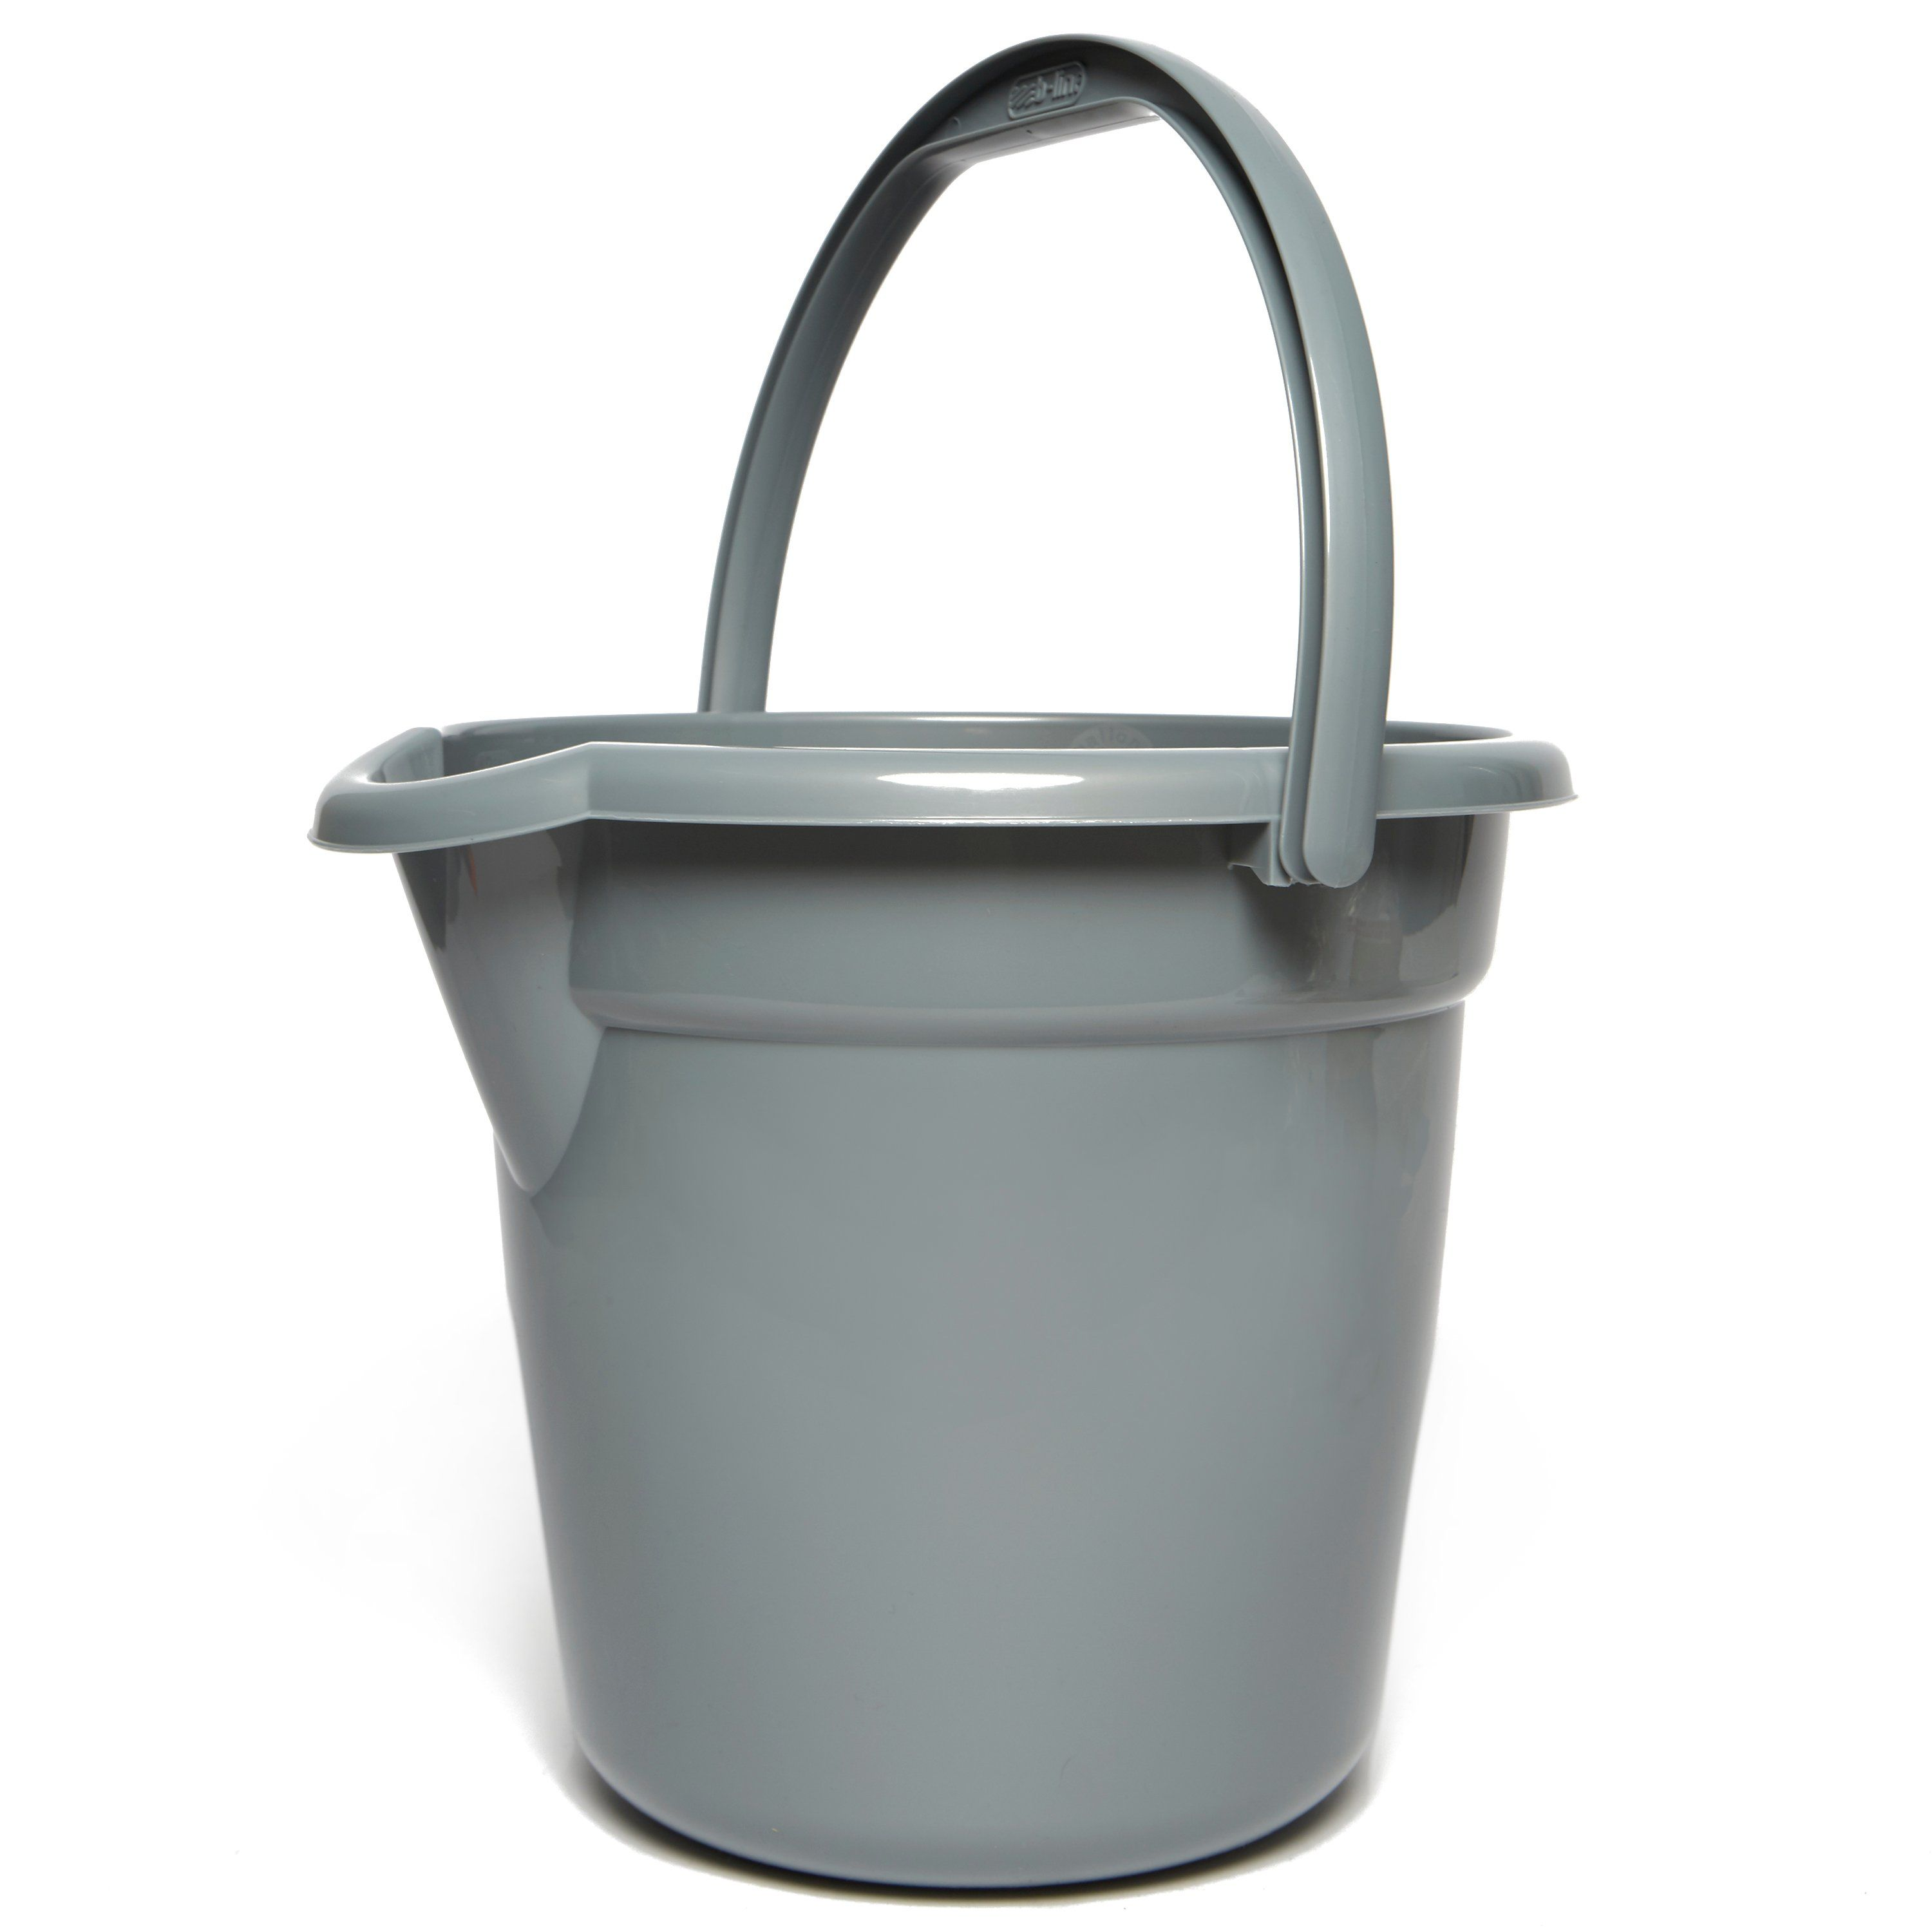 QUEST 12 Litre Plastic Bucket